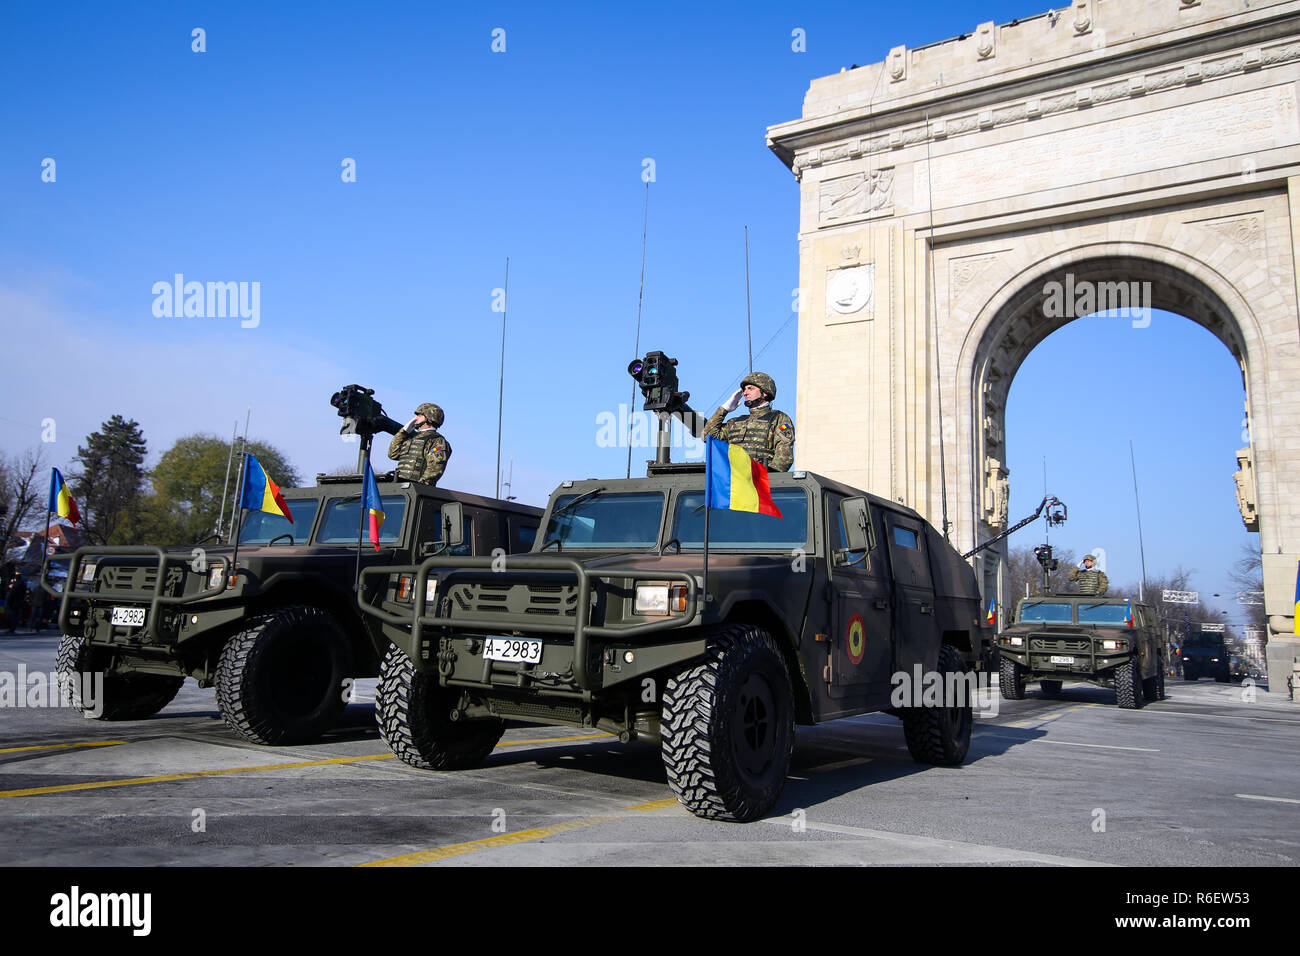 BUCHAREST, ROMANIA - December 1, 2018: URO VAMTAC combat armored vehicles, at Romanian National Day military parade pass under the Arch of Triumph - Stock Image